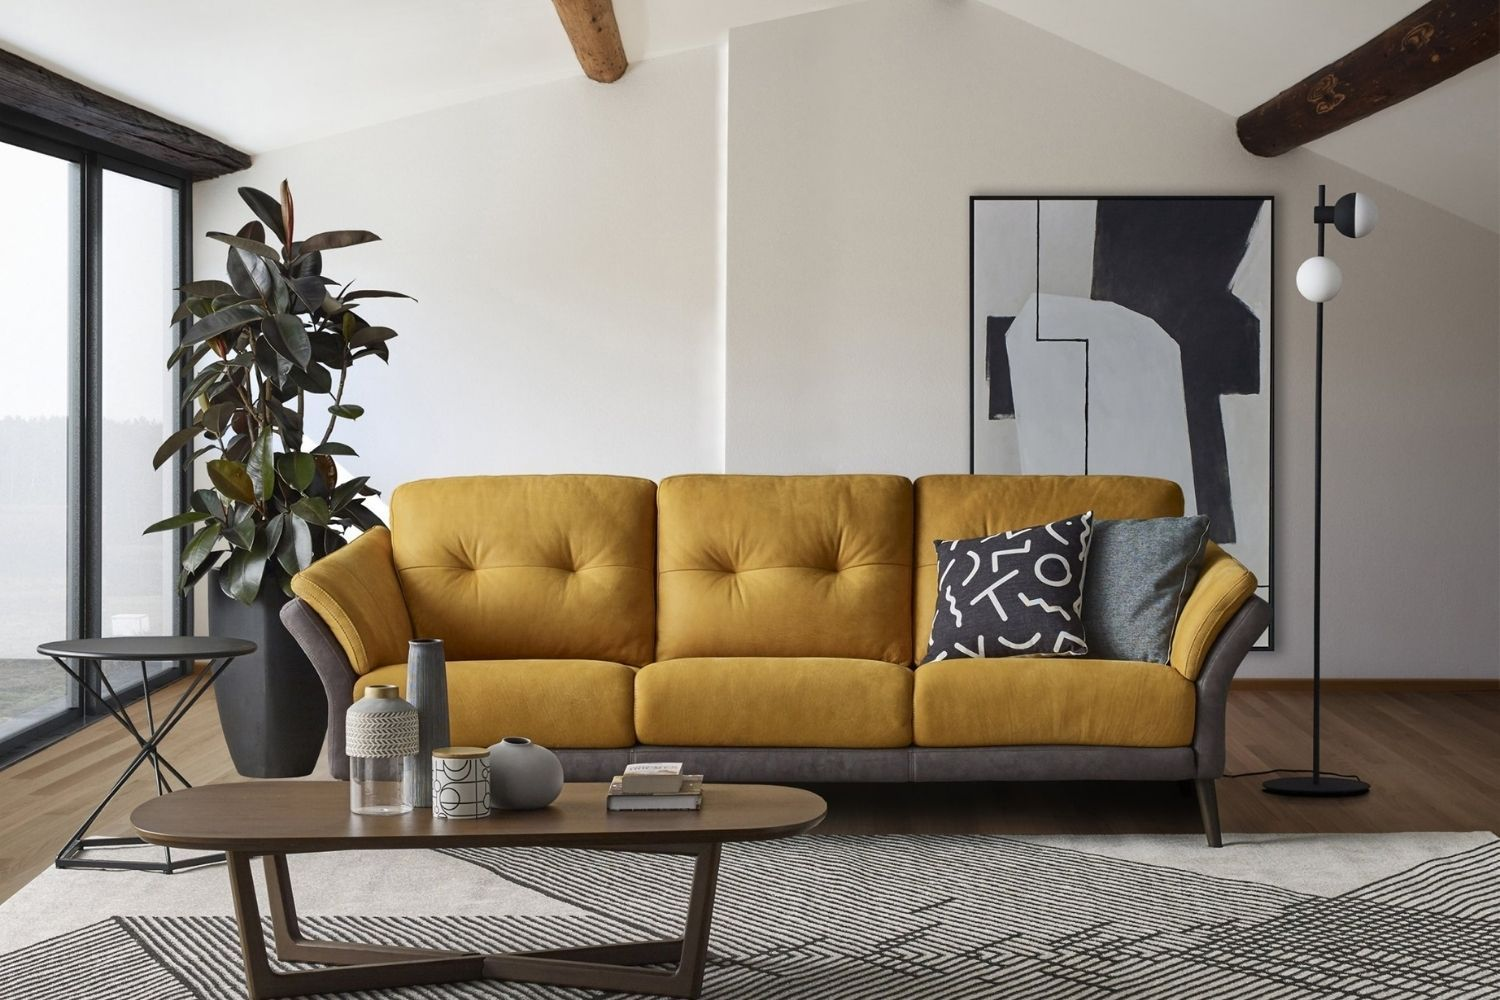 3-seater sofa in sunflower, from Rozel